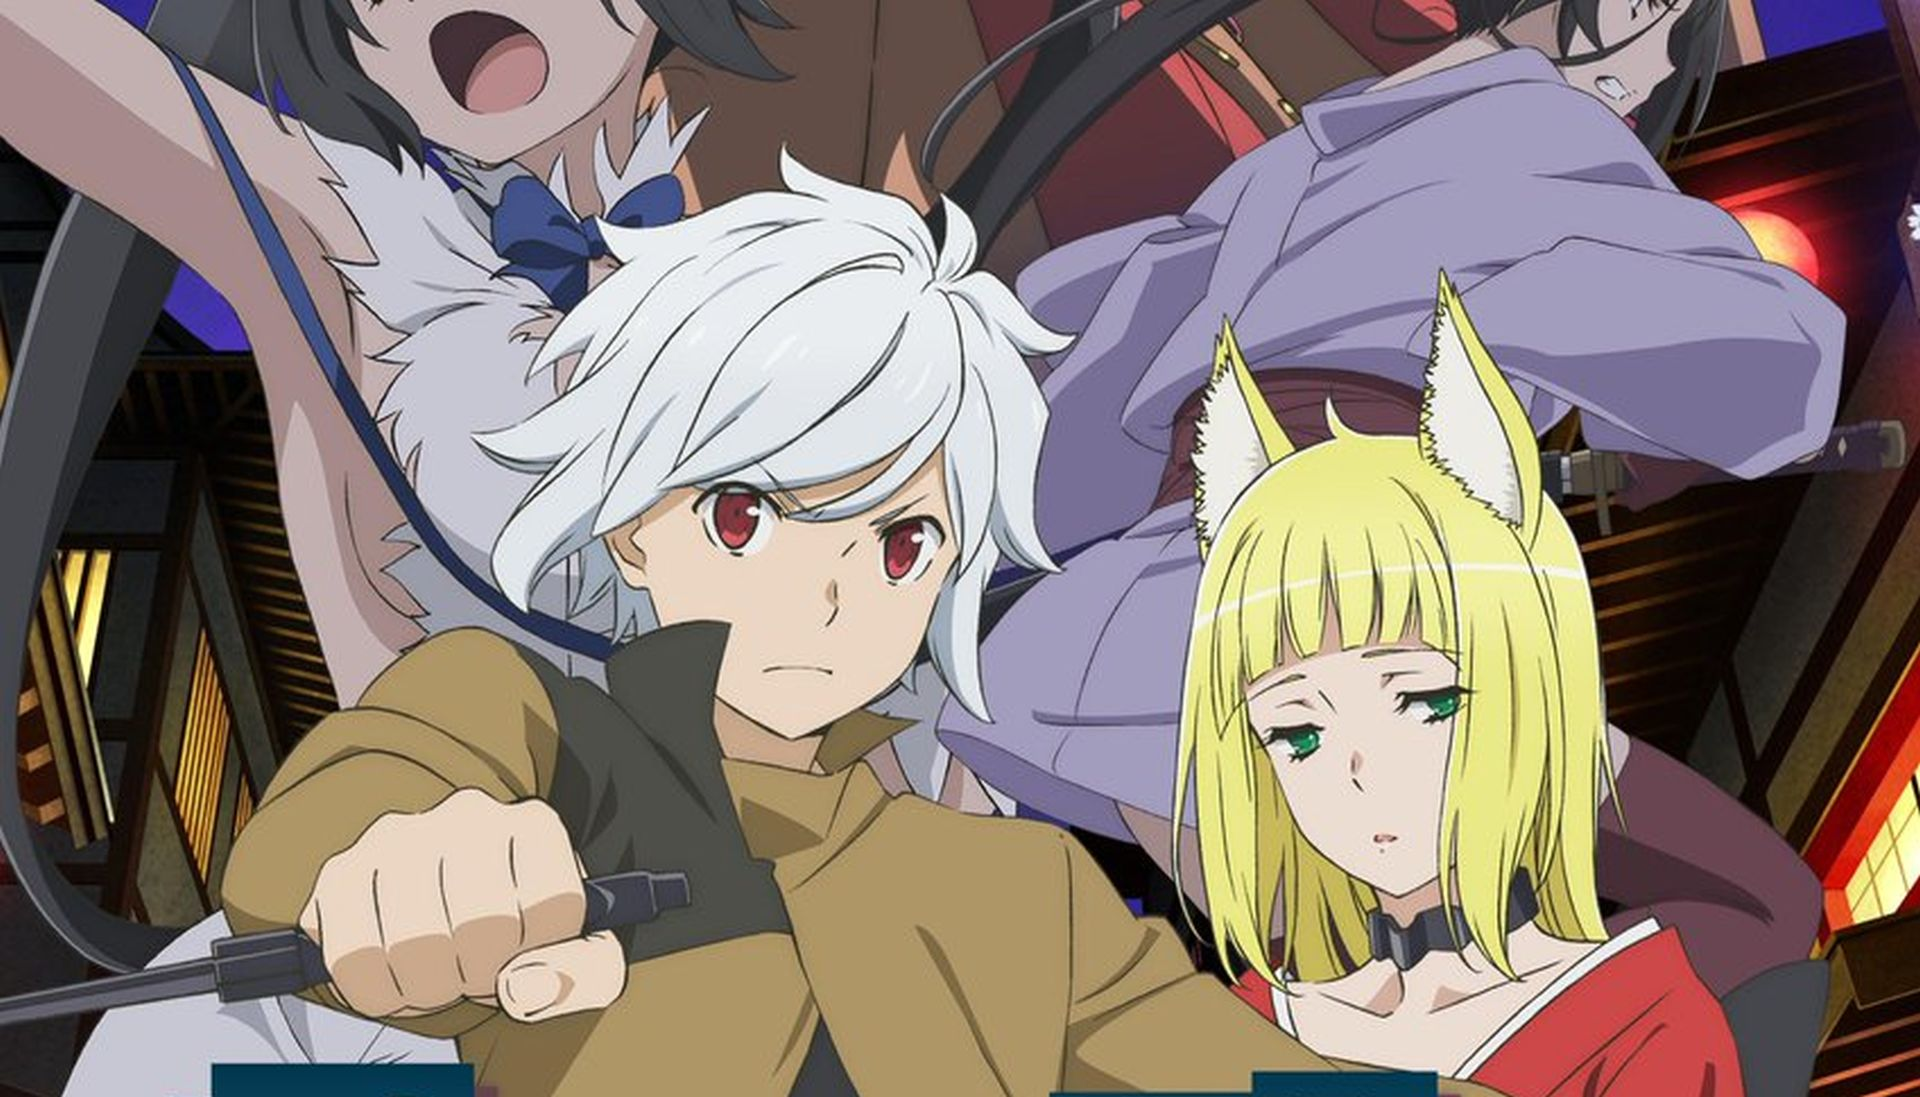 Season 2 Of Is It Wrong To Try To Pick Up Girls In A Dungeon Familia Myth Is Set To Premiere This Summer Geektyrant